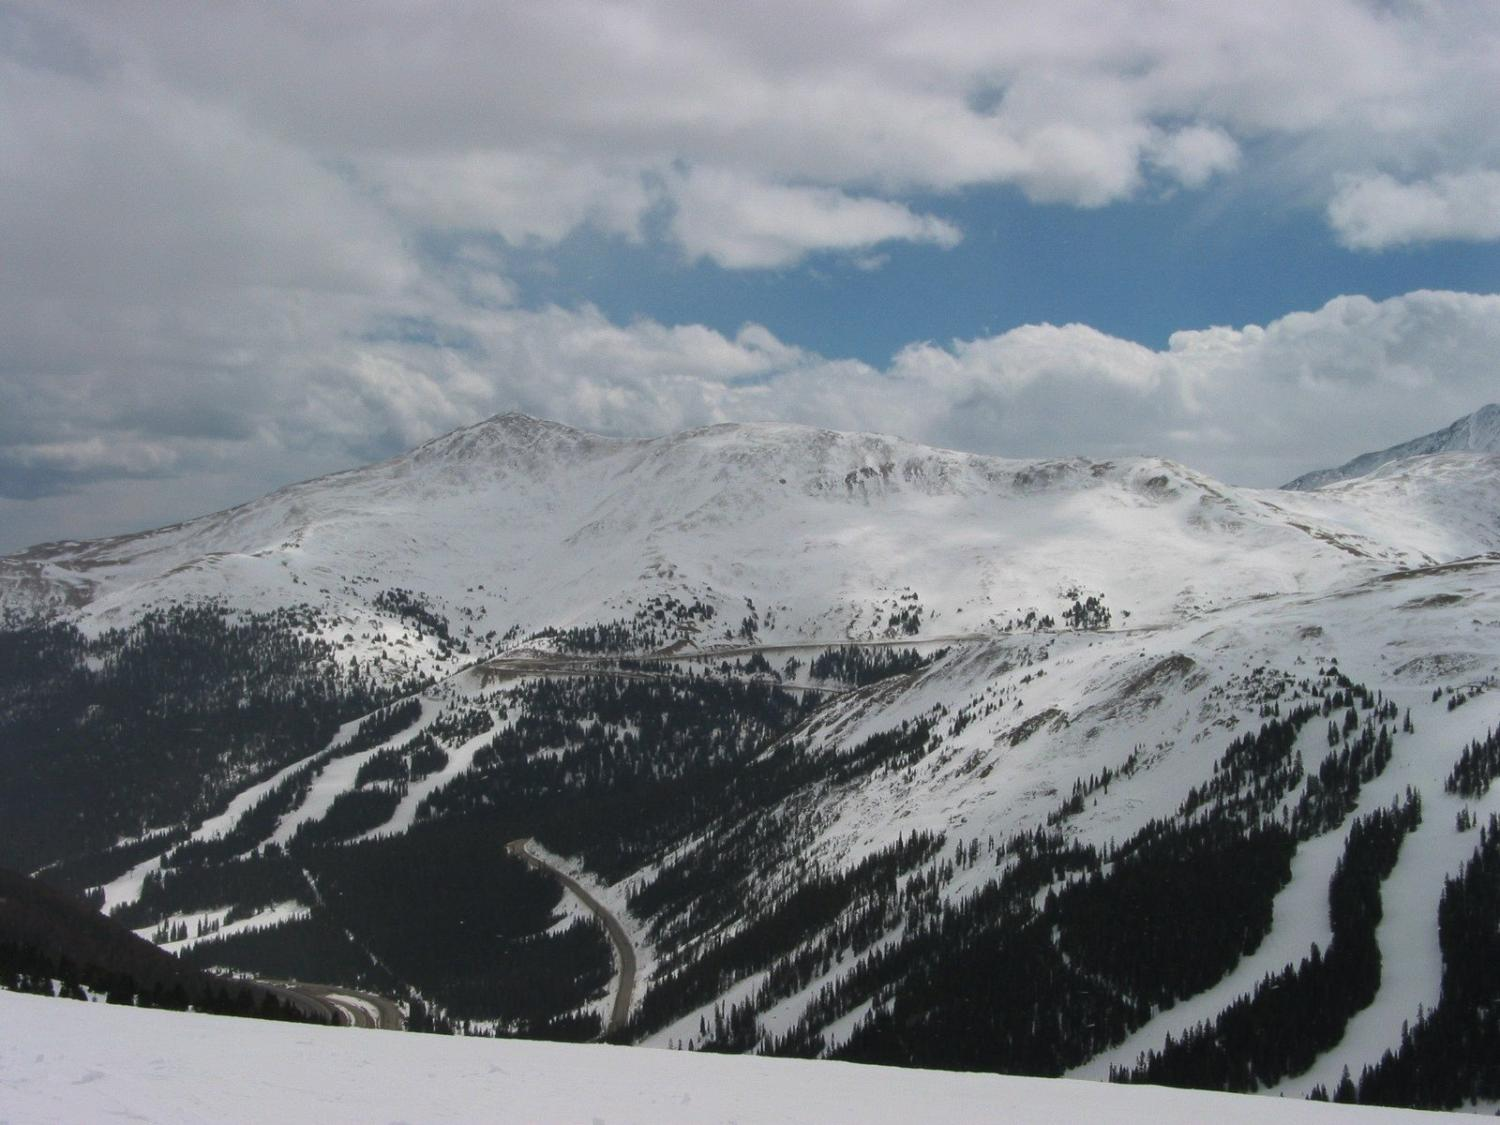 Loveland Pass with Loveland Valley in the Foreground